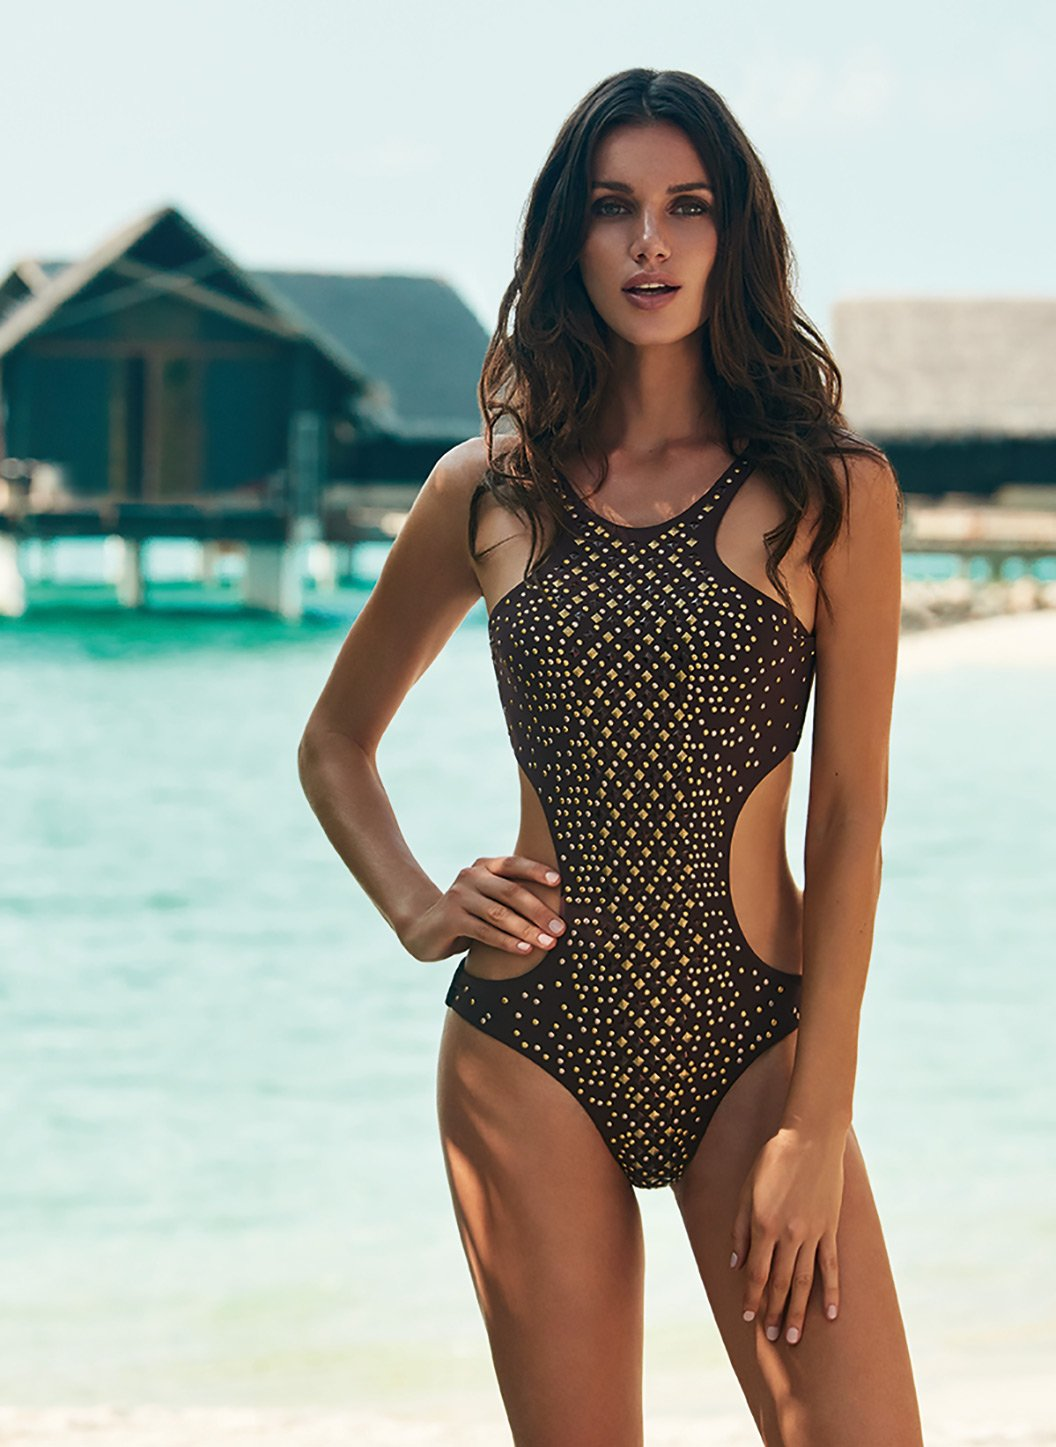 hollywood walnut studded cutout onepiece swimsuit lifestyle 2019